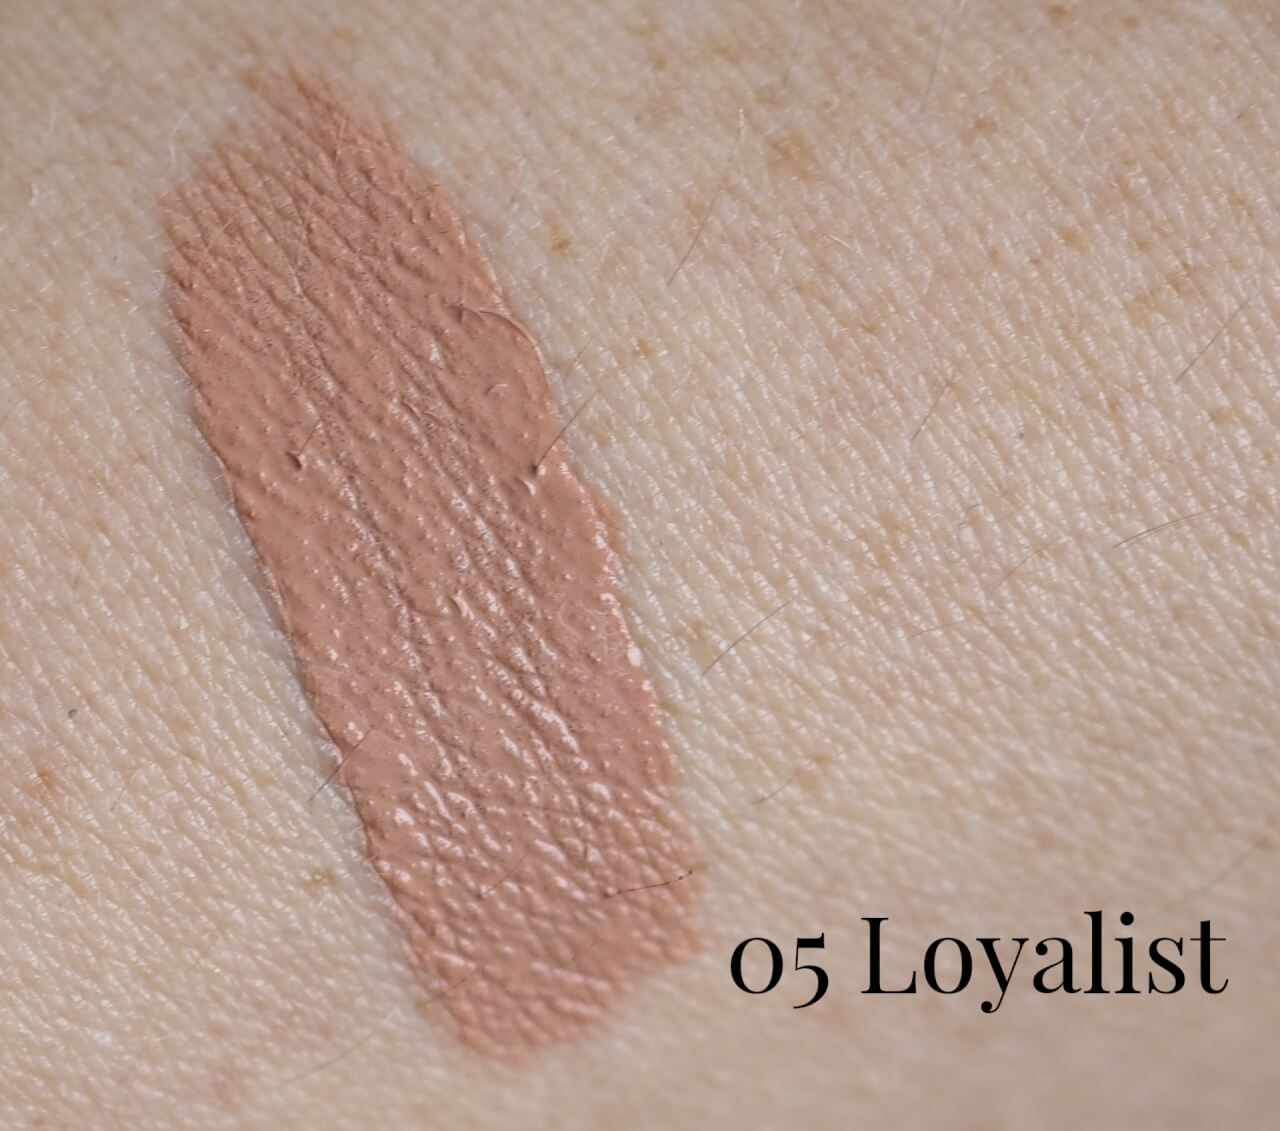 05 Loyalist Super Stay Matte Ink